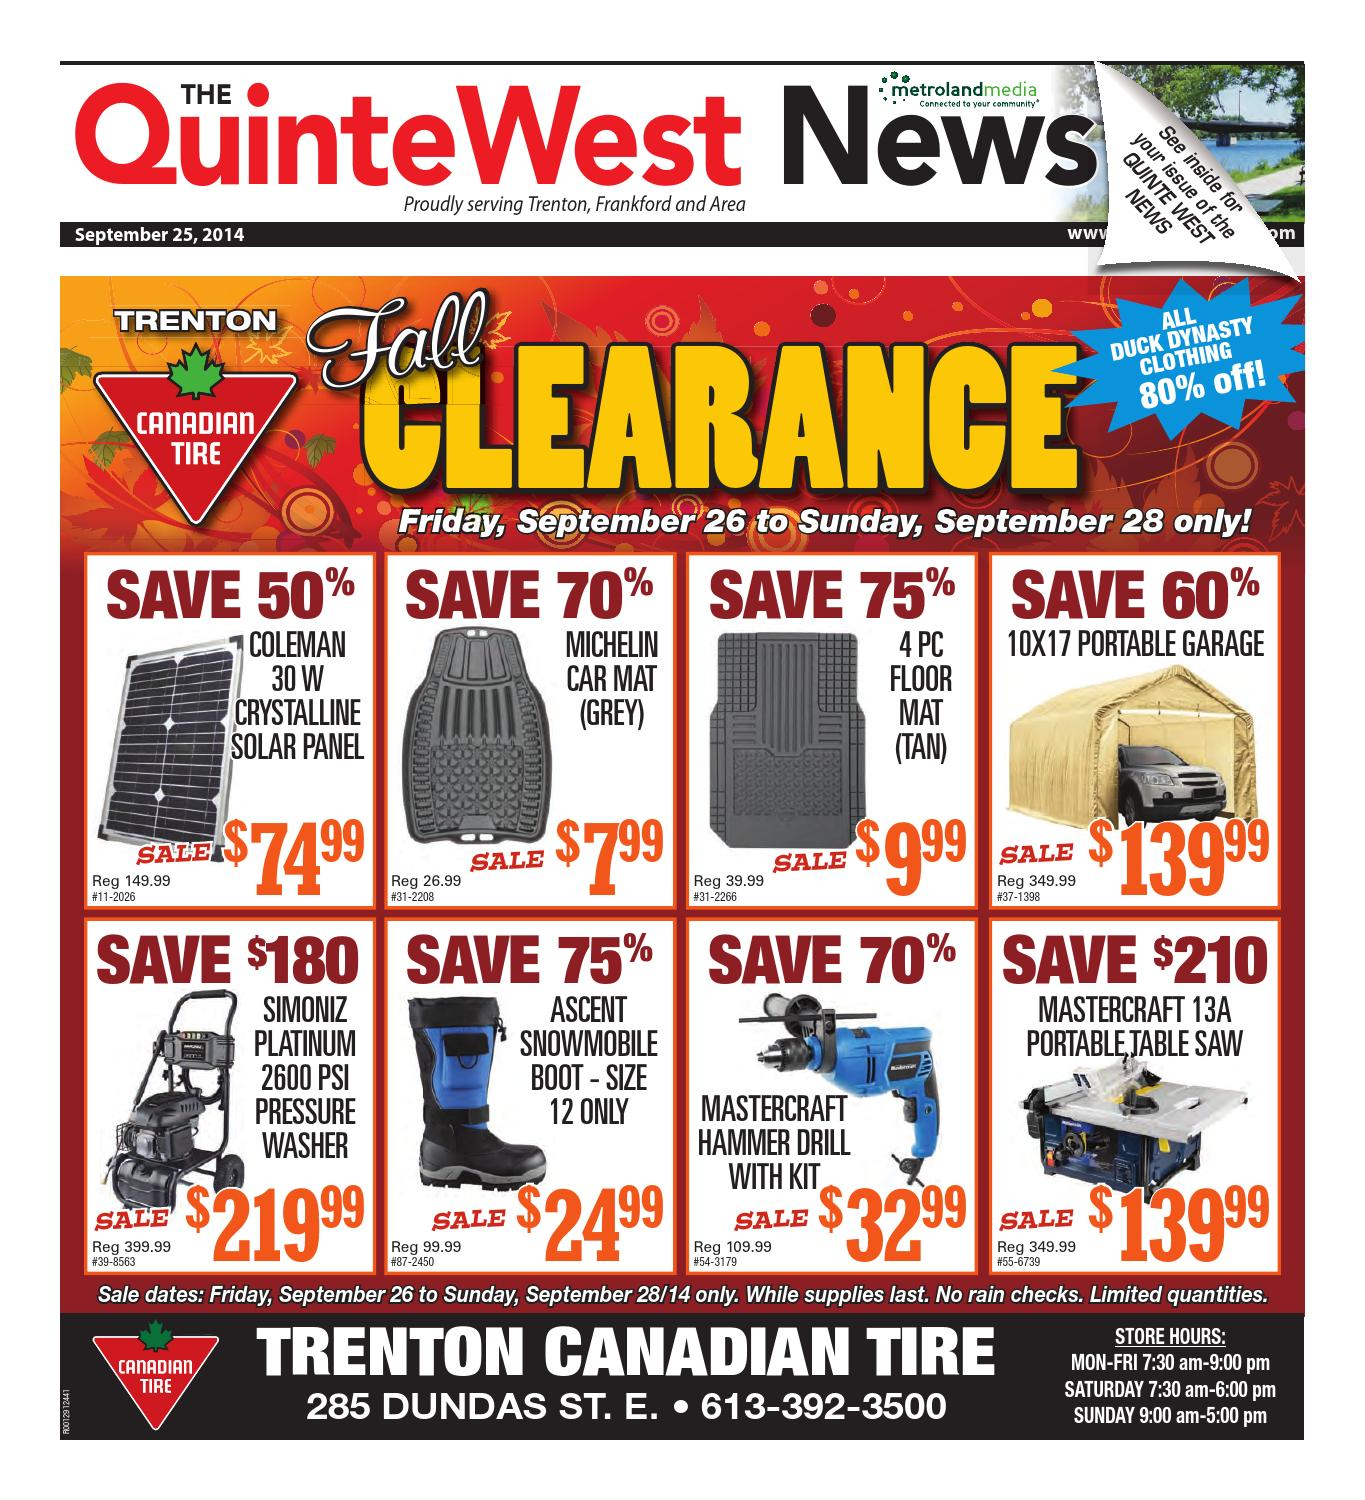 Quinte092514 by Metroland East - Quinte West News - issuu